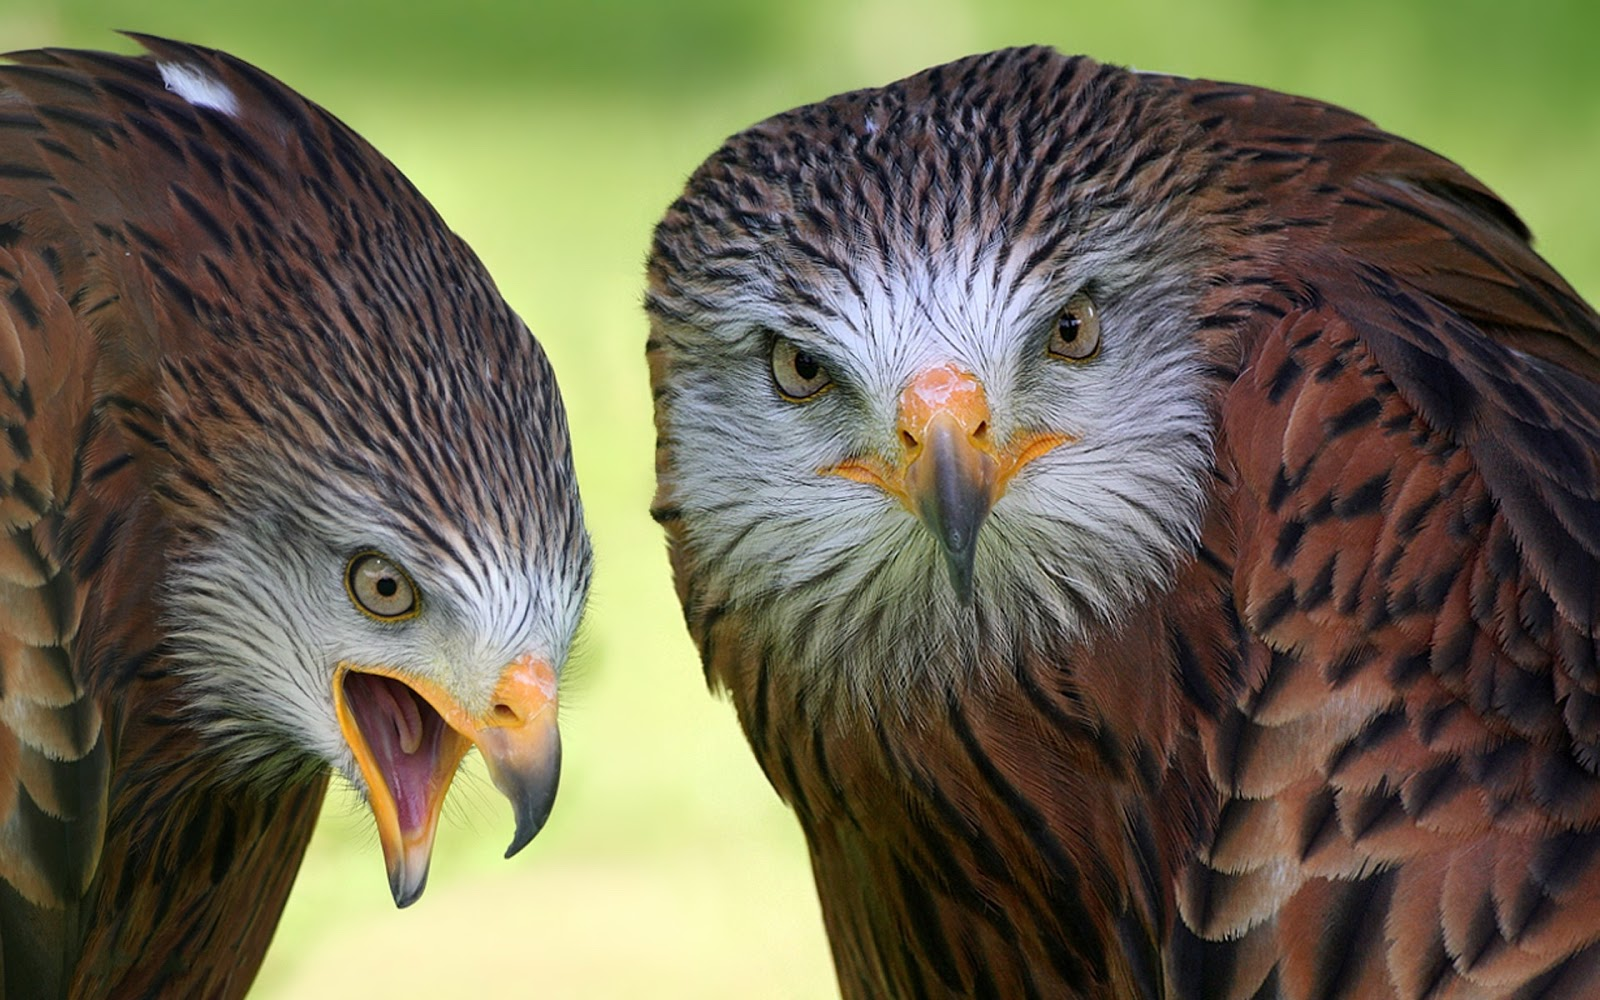 Must see   Wallpaper Horse Eagle - Eagle+Wallpapers+5  Photograph_18522.jpg